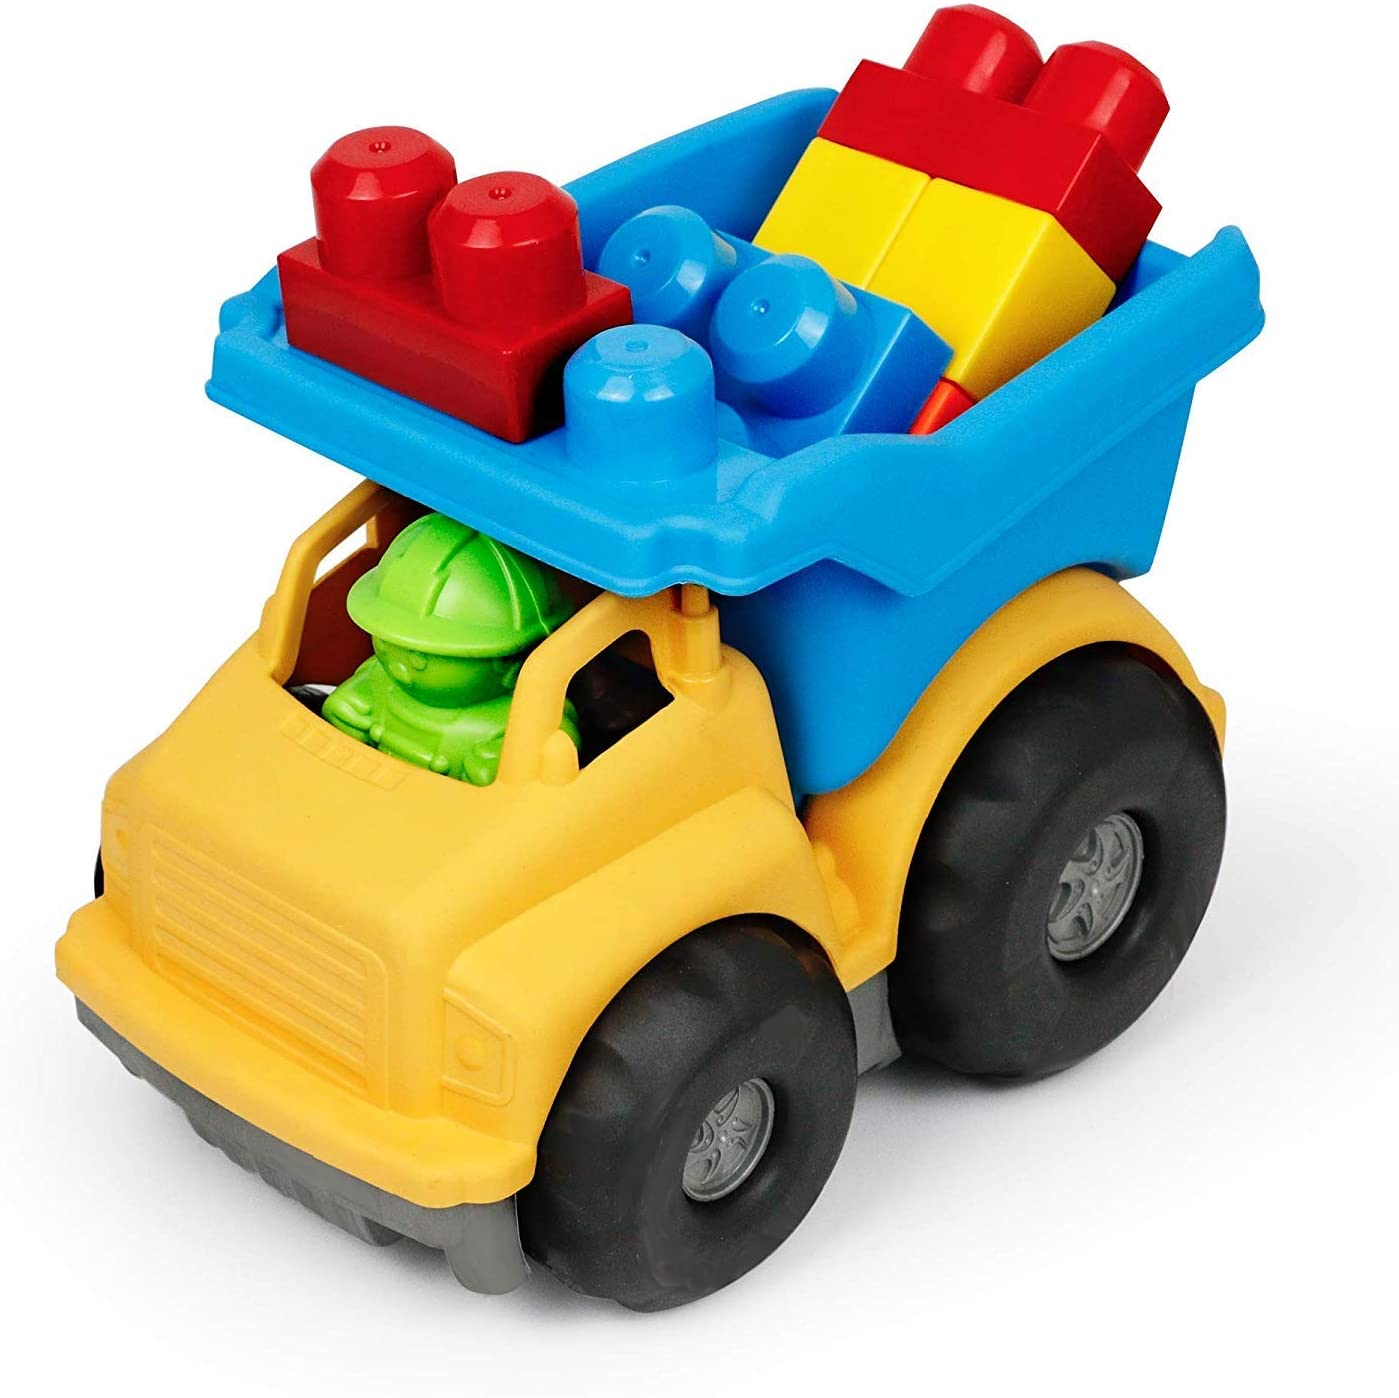 Bambiya Dump Truck Toy Play Set – 9 Pieces Toy: Building Blocks for Kids and Builder Figure – BPA Free, Phthalates Free Play Toys for Gross Motor, Fine Motor Skill Development. Pretend Play.